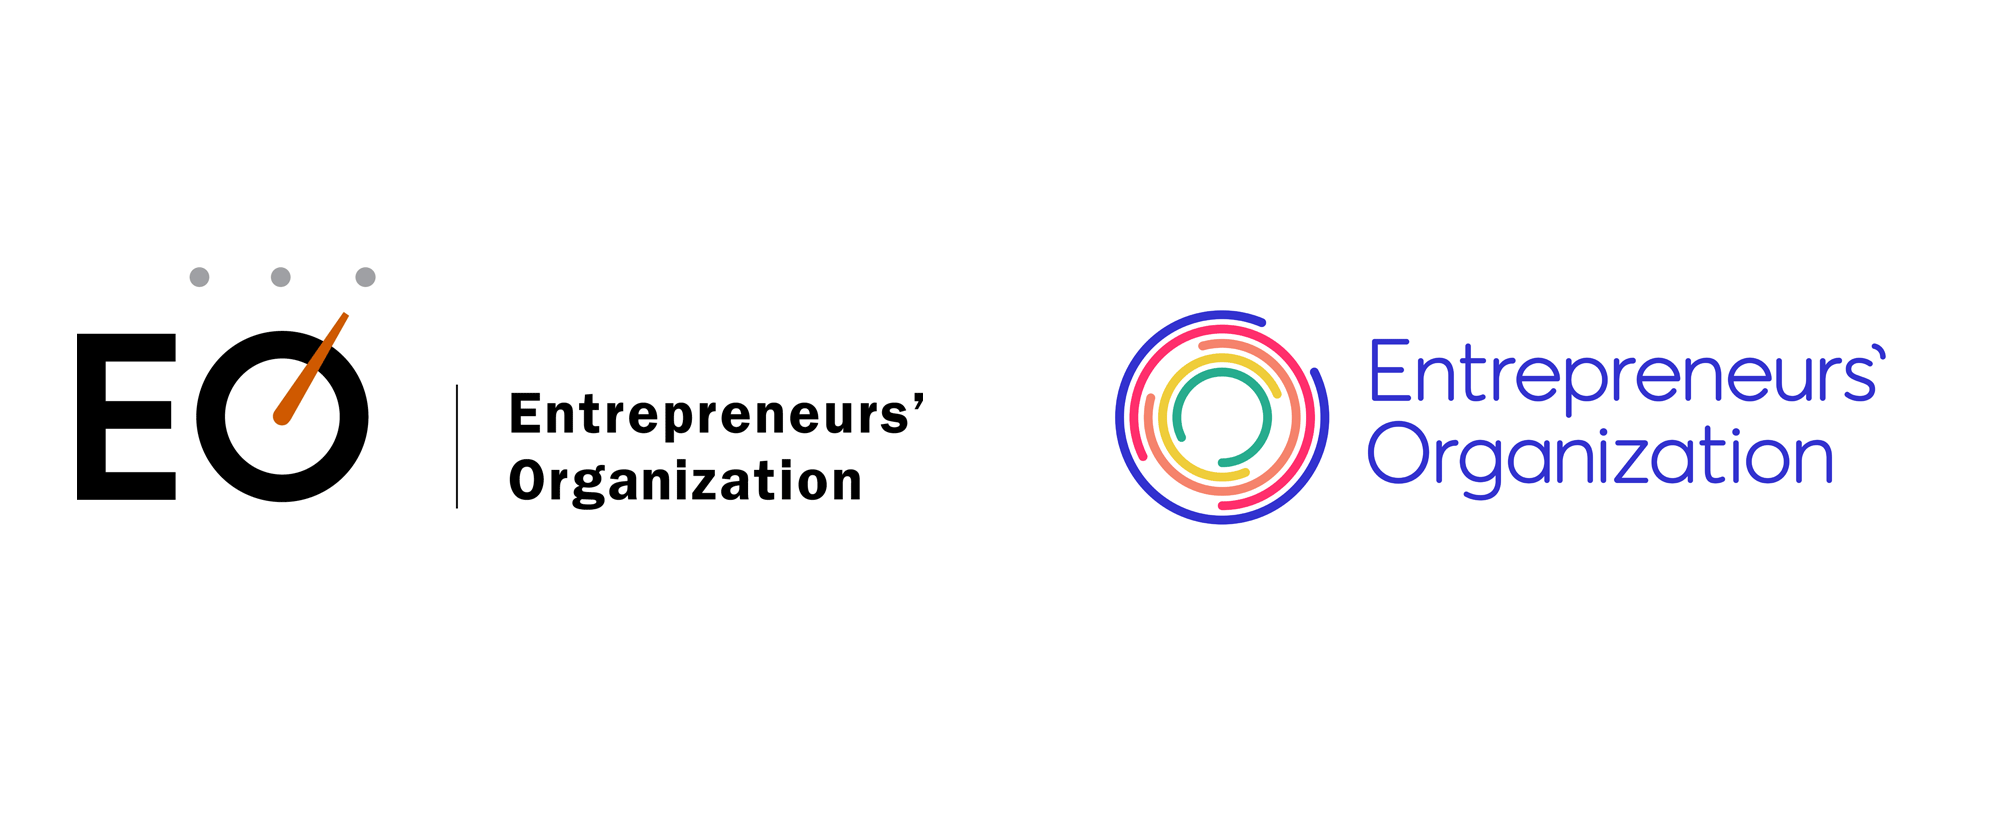 New Logo and Identity for Entrepreneurs' Organization by Brandpie